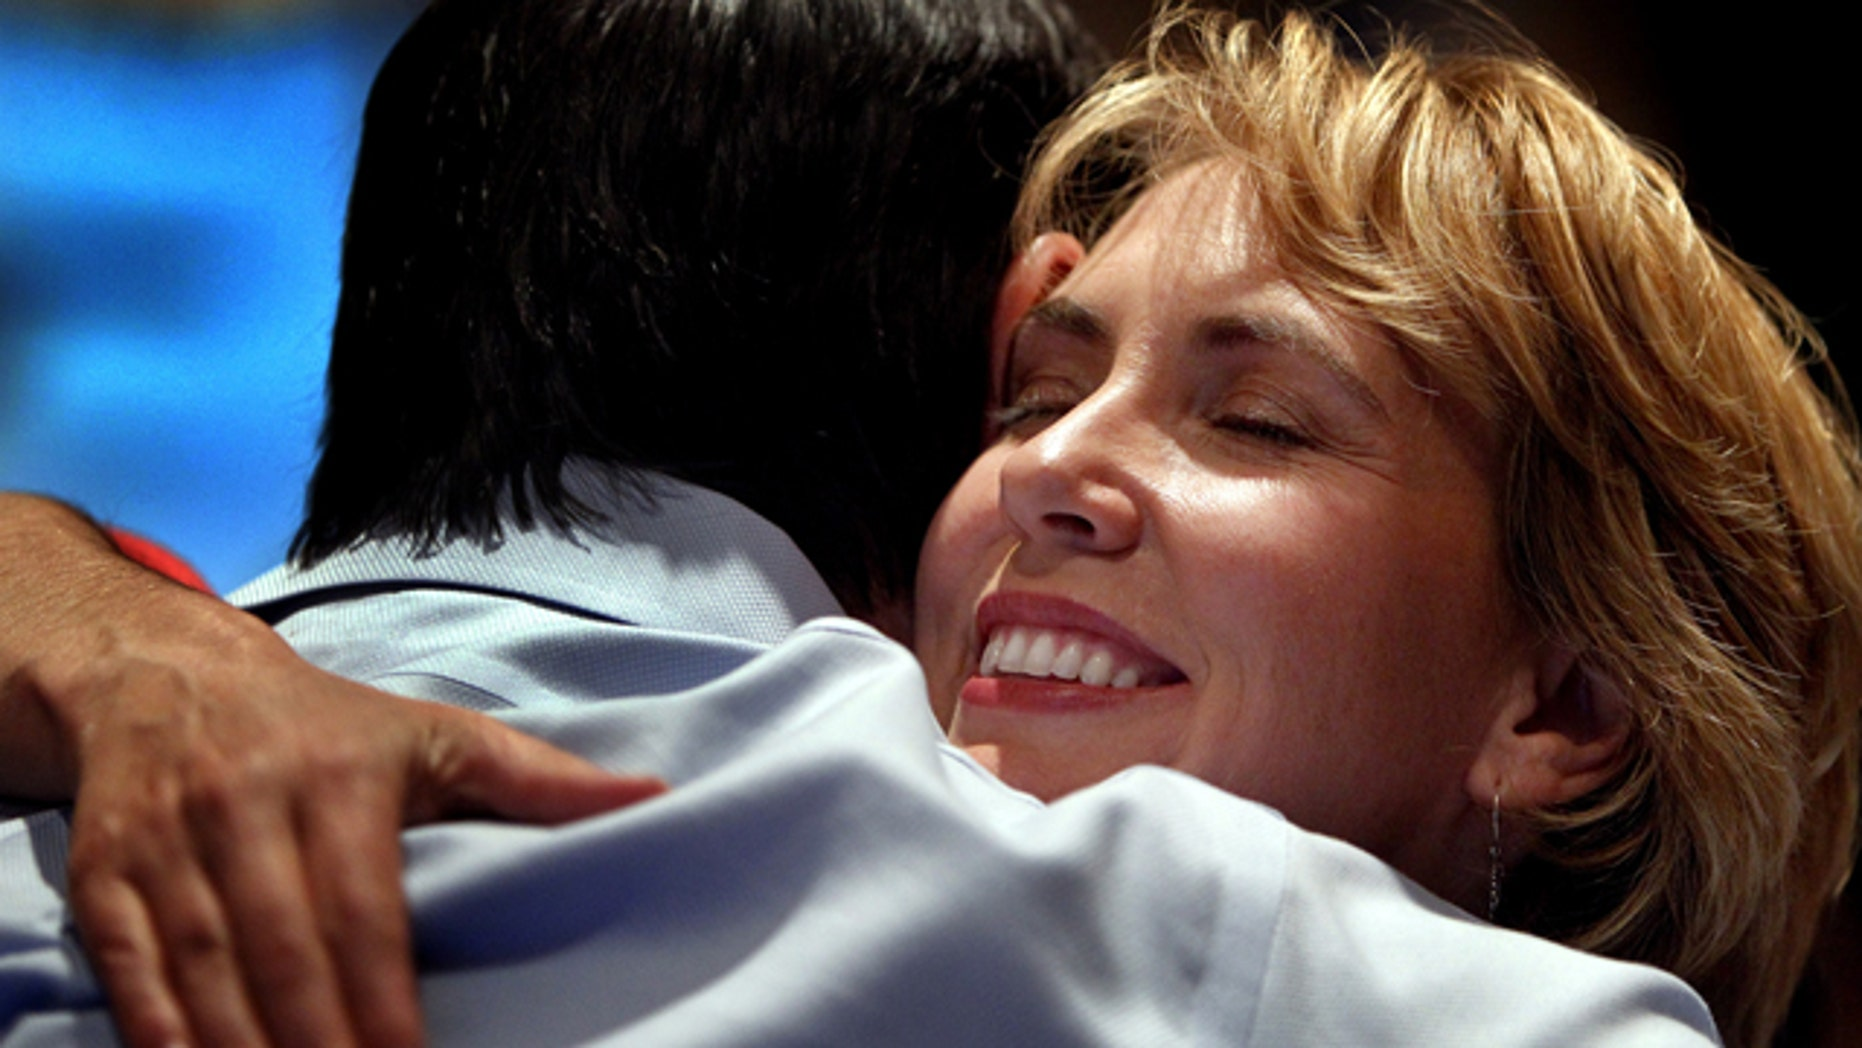 Nov. 2, 2010: U.S. Rep. Gabrielle Giffords gets a hug from a supporter at the Pima County Democratic election party at the Tucson Marriott in Tucson, Ariz. Authorities say that Giffords was shot in the head while meeting with constituents